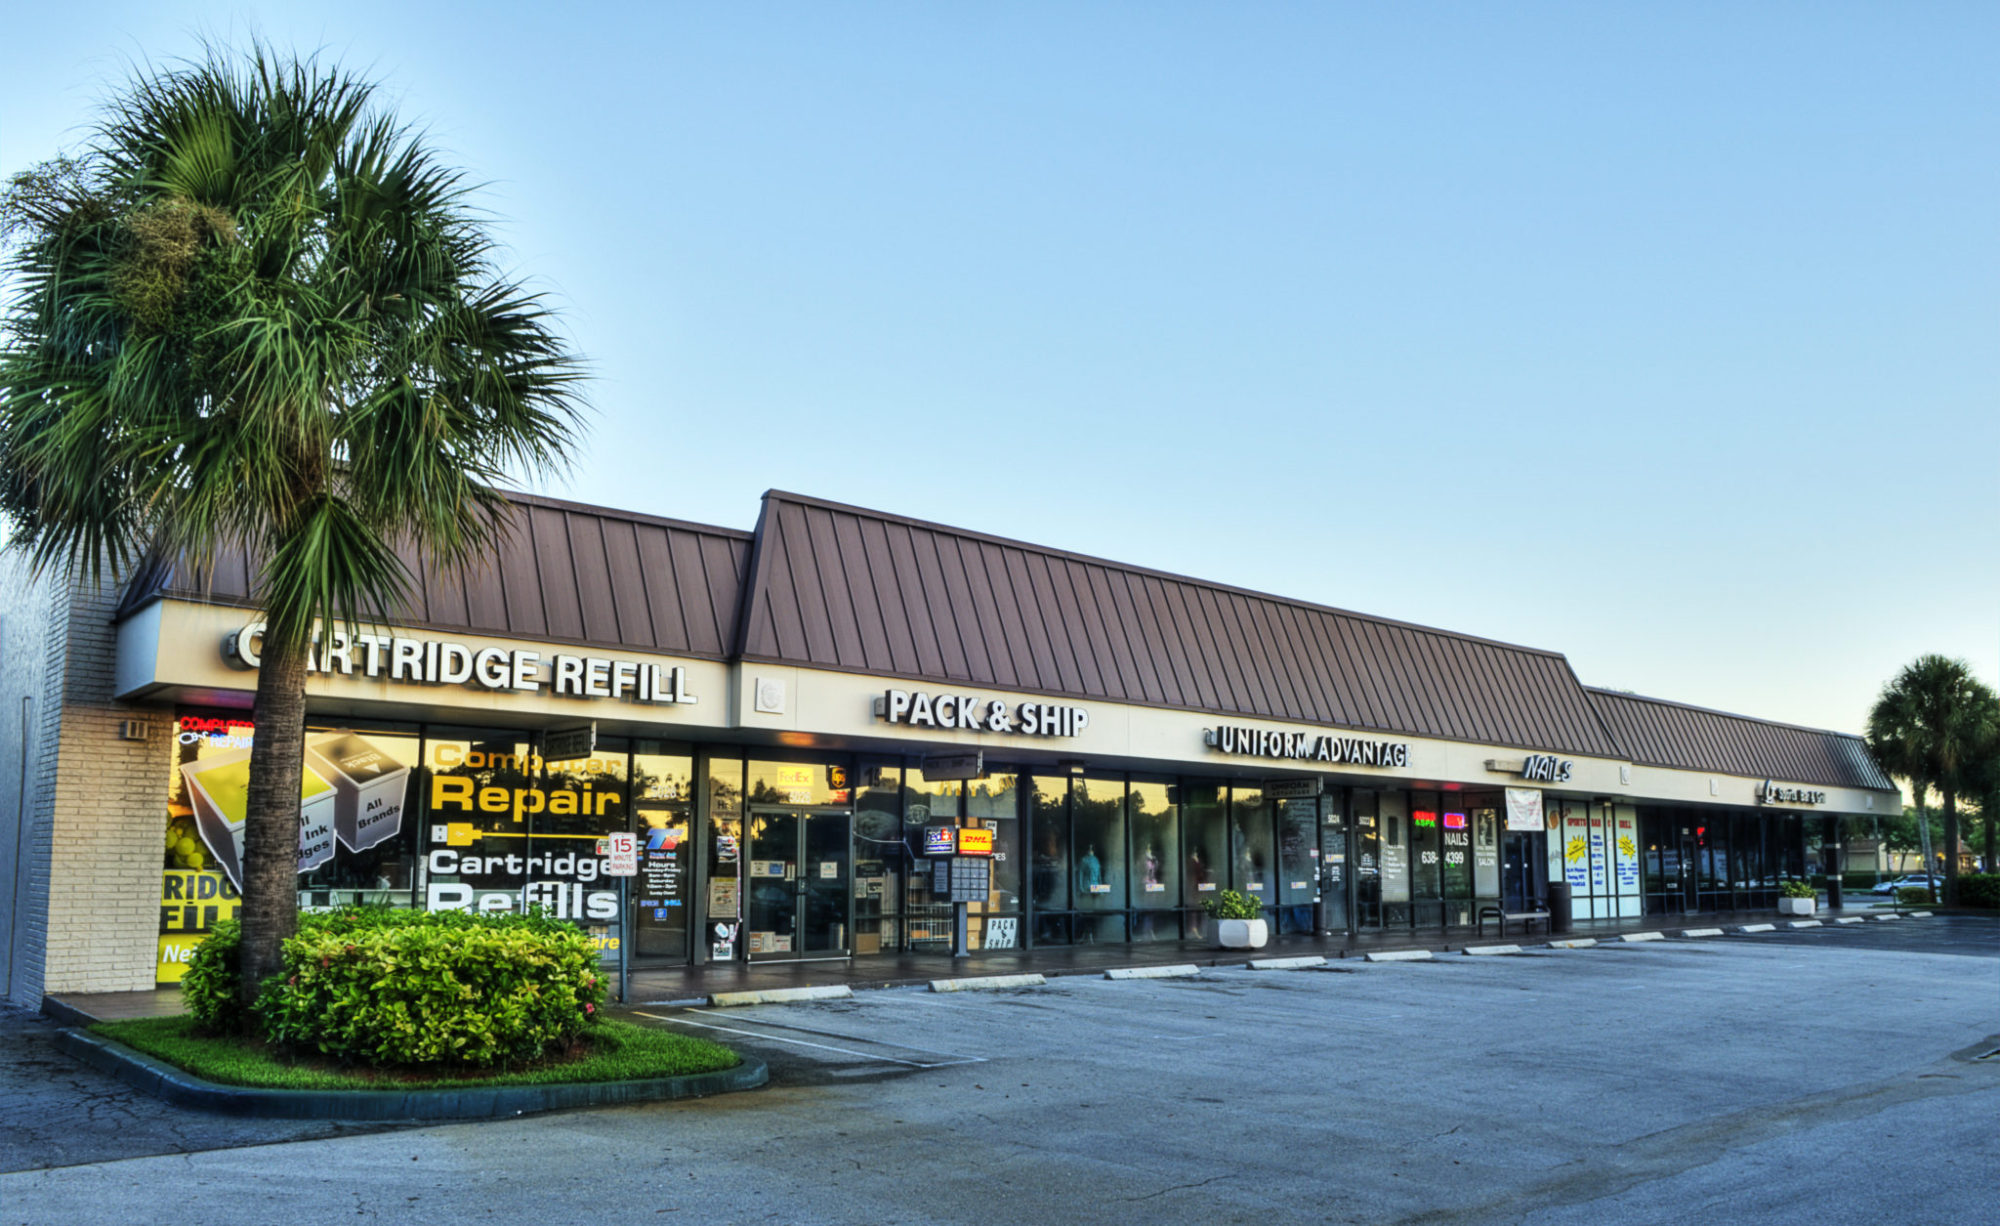 PEBB Enterprises - Delray Commons, Delray Beach, Florida 1